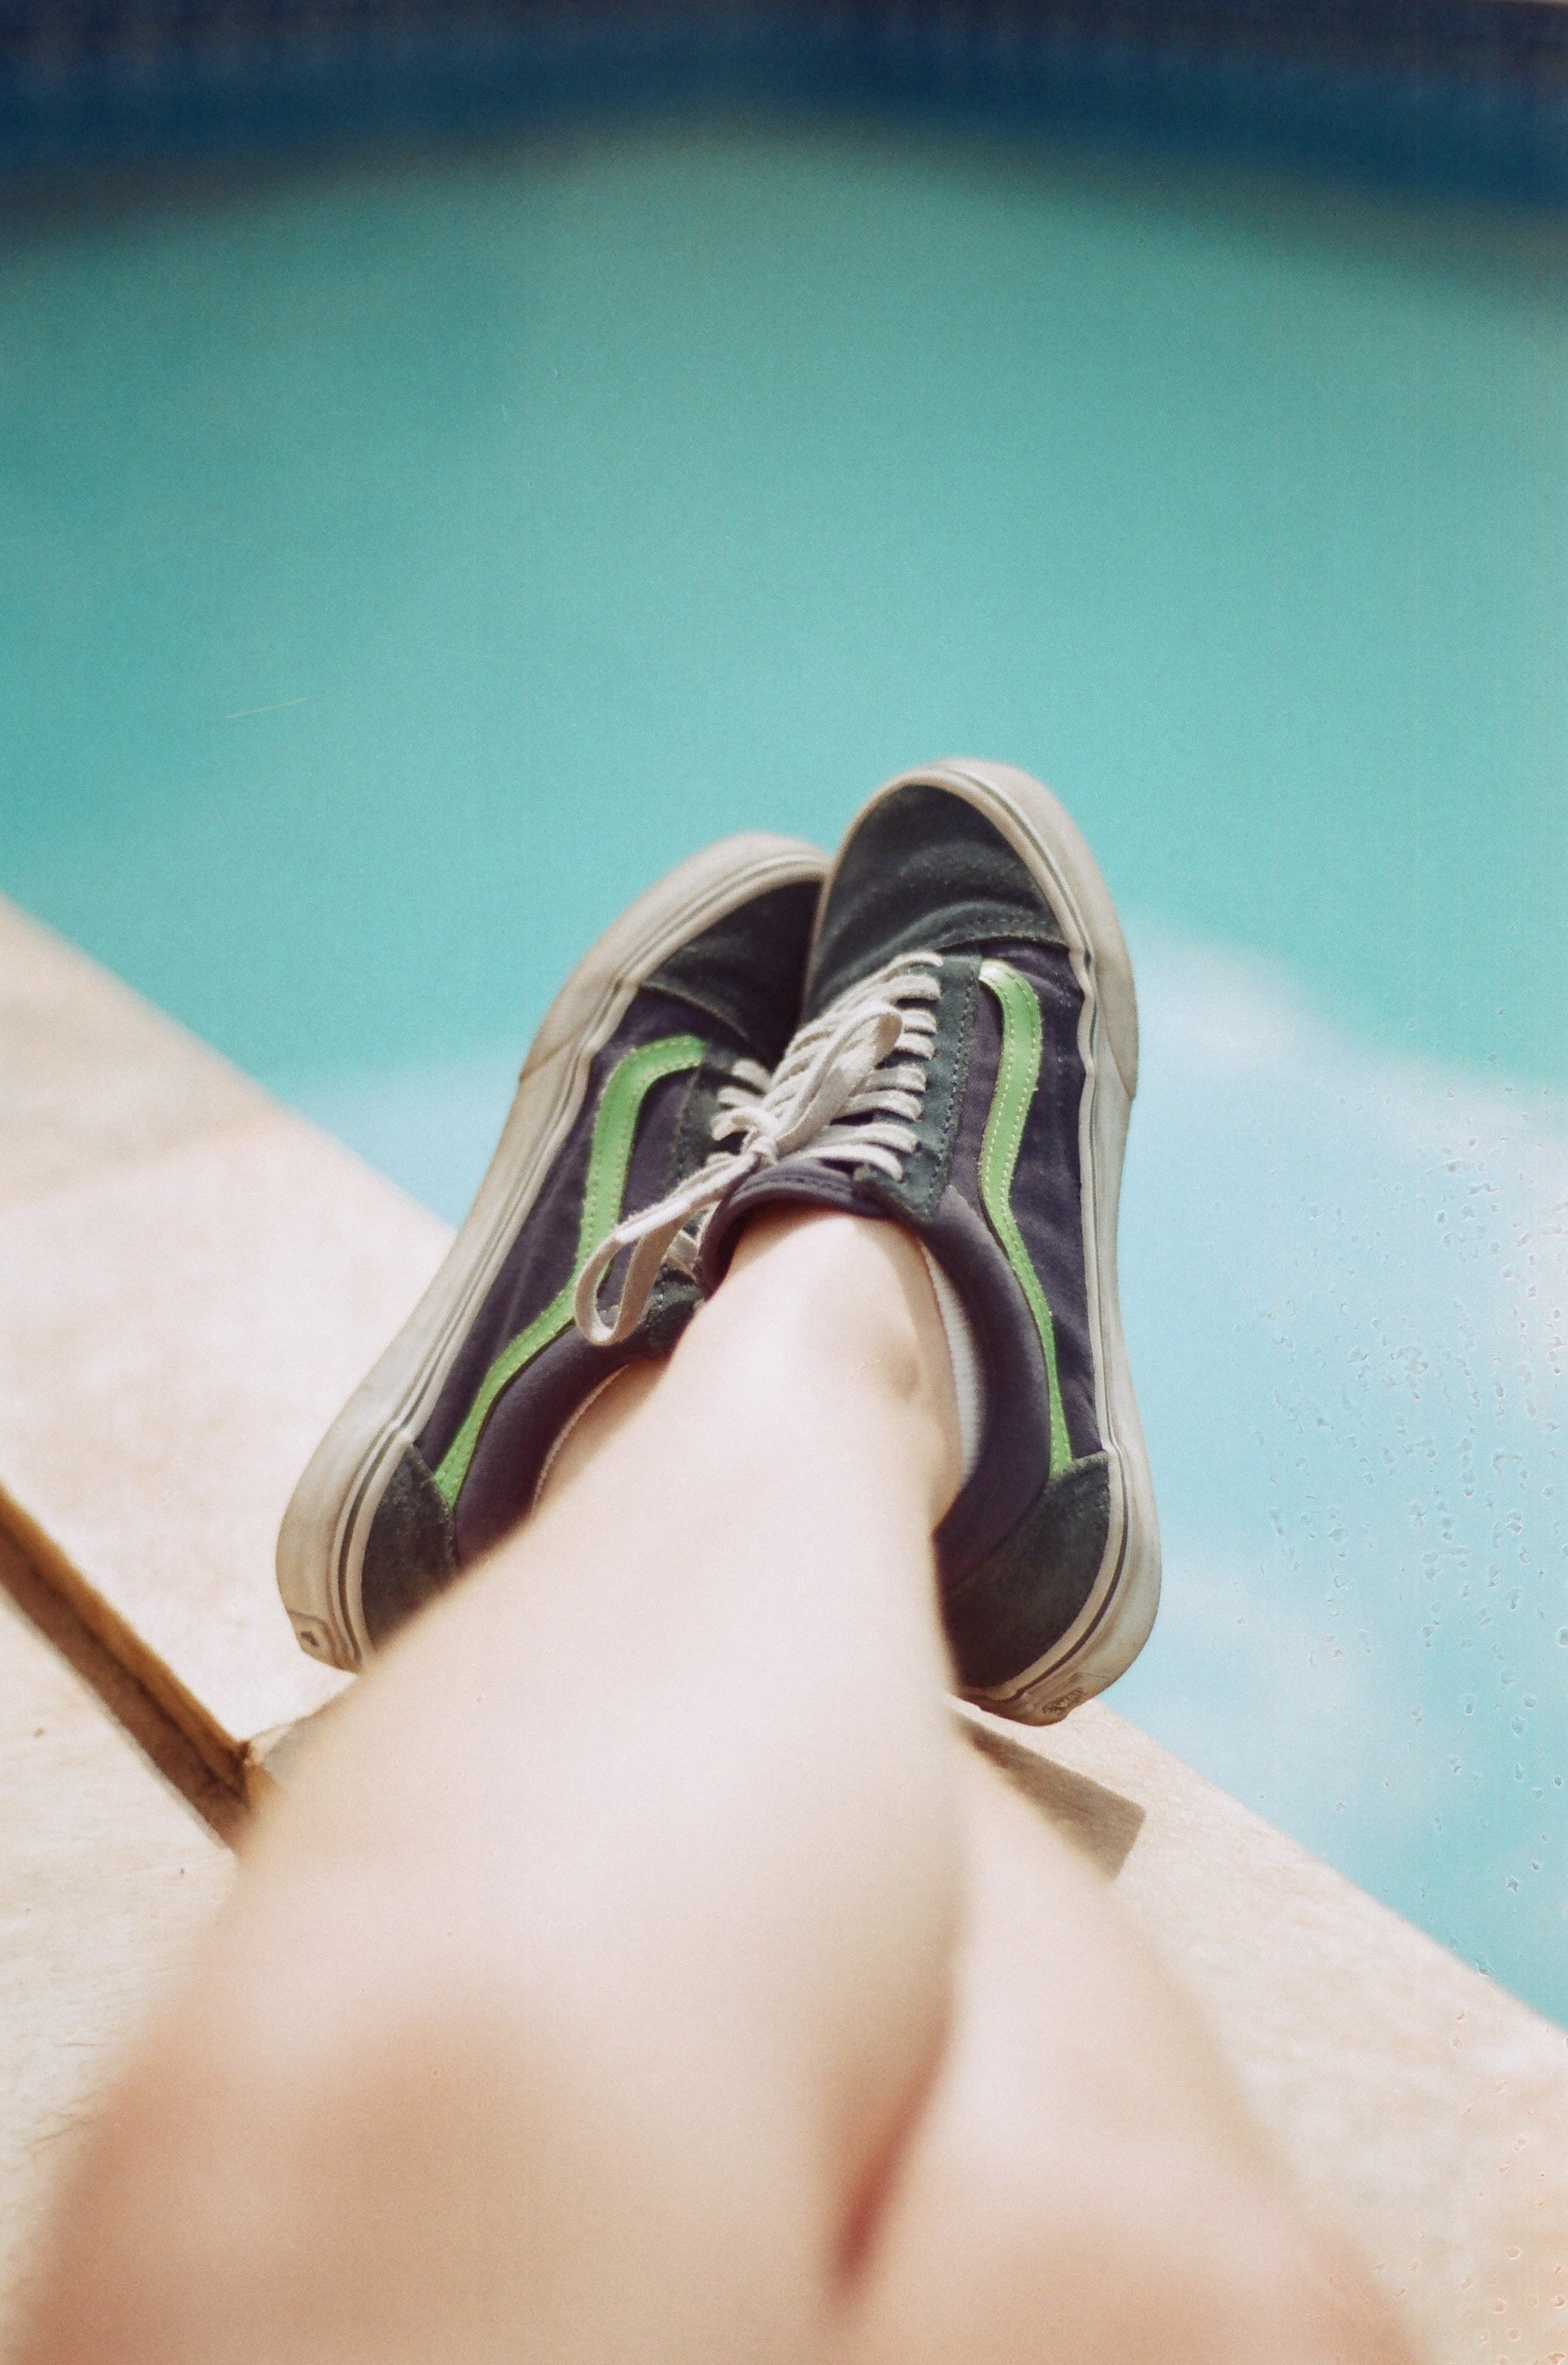 person wearing black-and-green Vans low-top sneakers